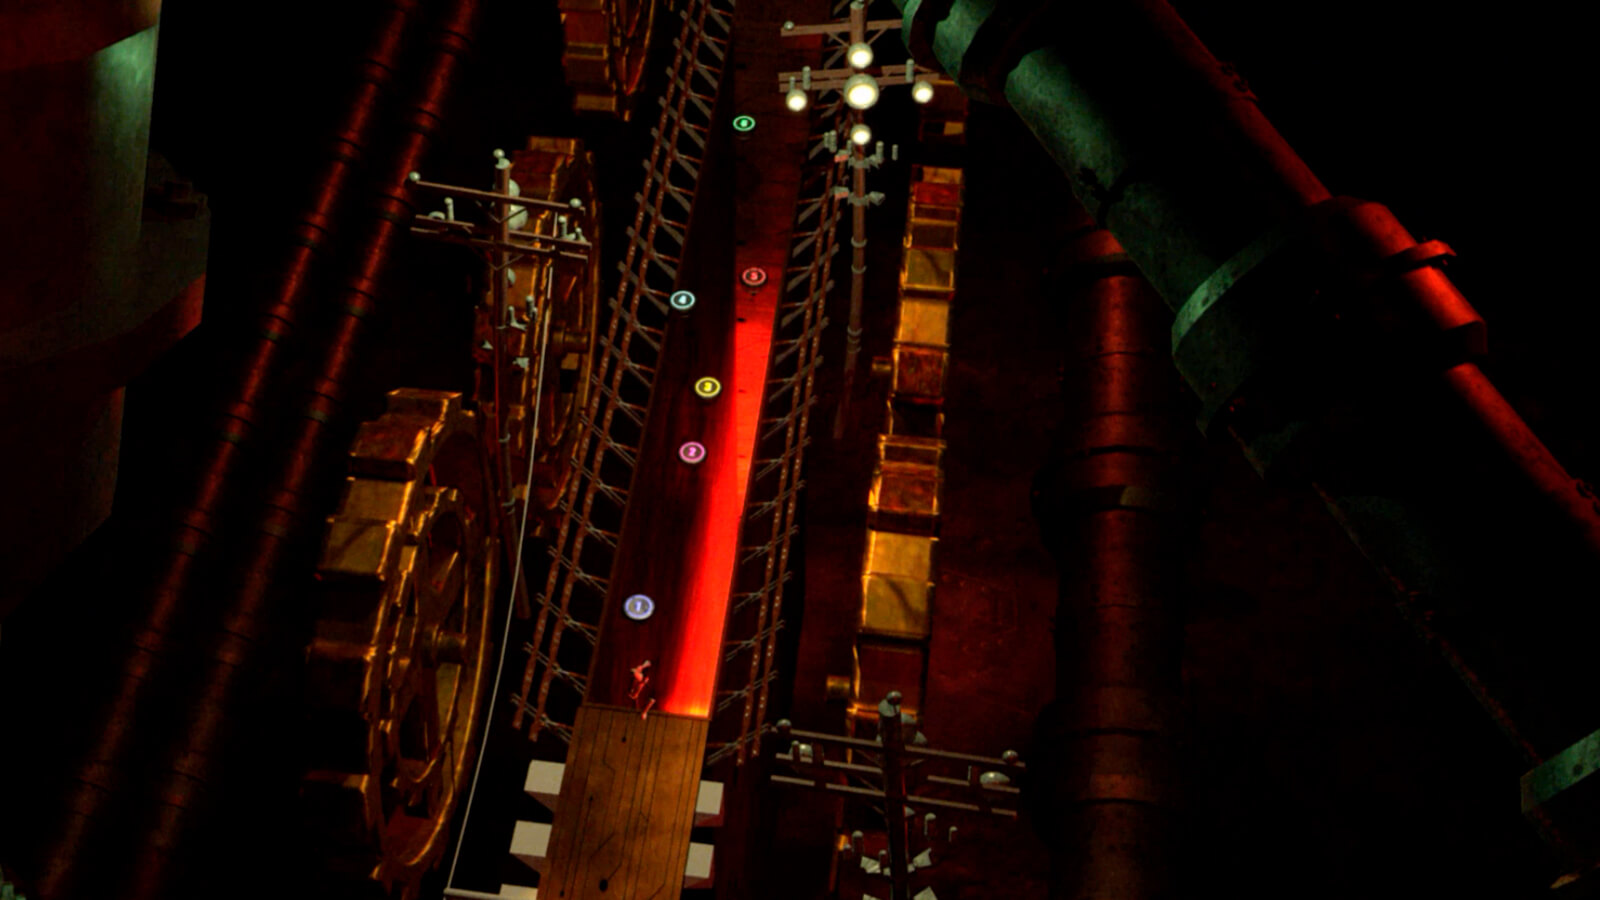 A red-lit industrial corridor seen from above flanked by cogs and telephone poles